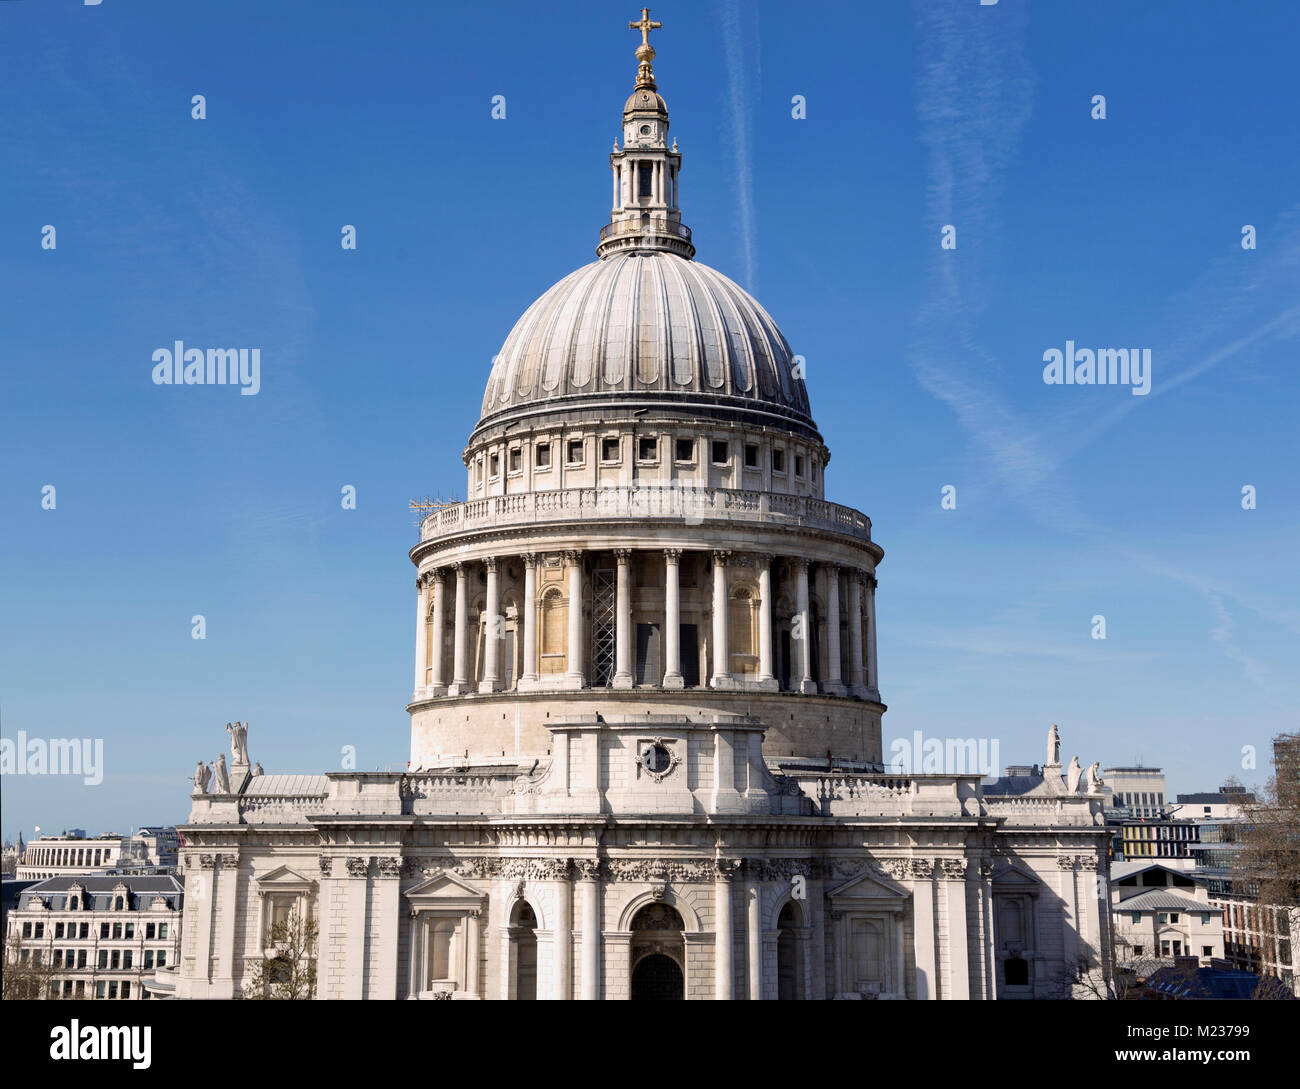 St Pauls Church in the City of London, England Stock Photo